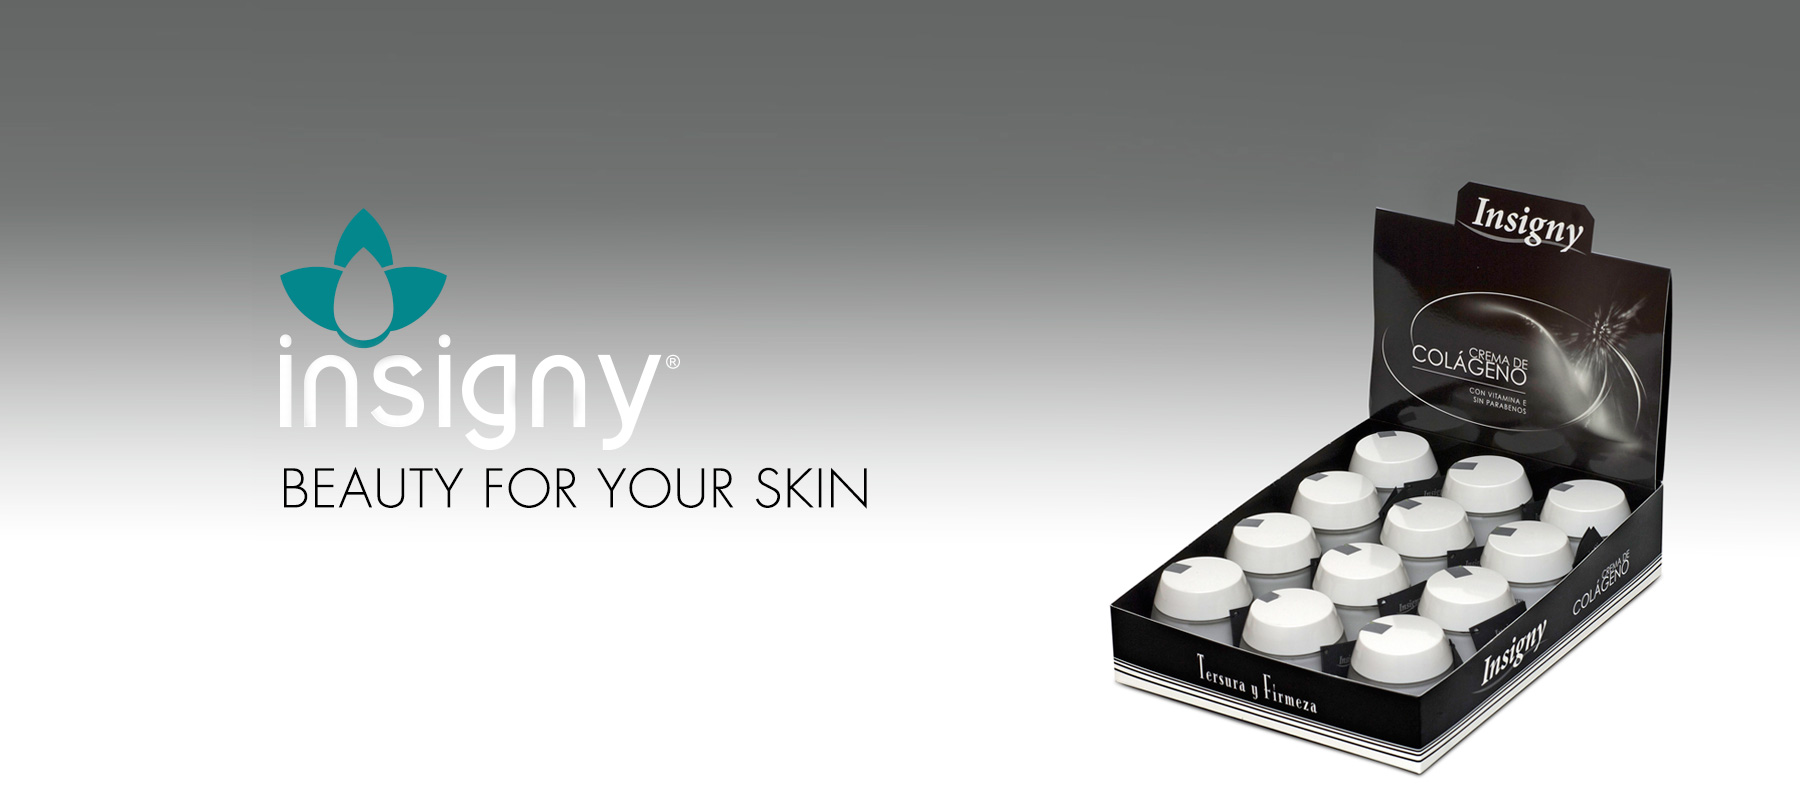 Insigny, beauty for your skin